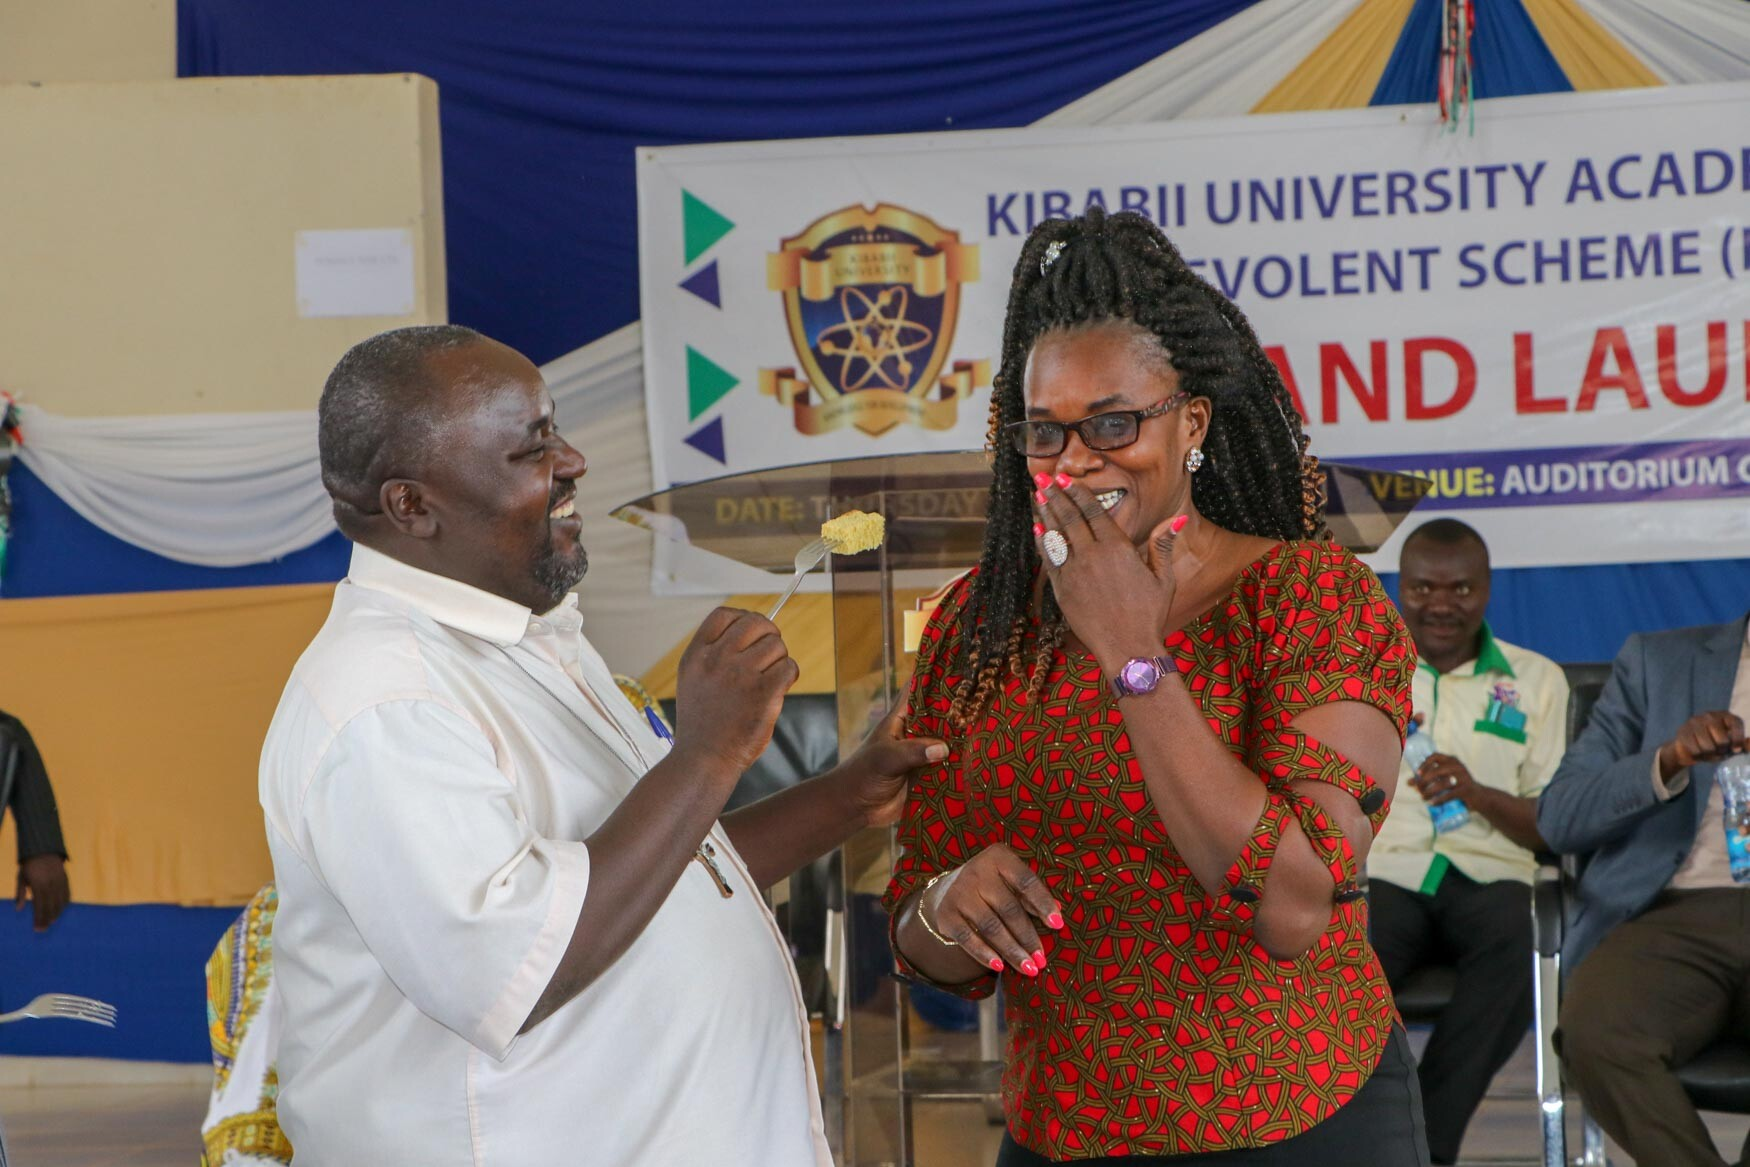 Academic Staff Benevolent Scheme (KUASBS) Grand Launch Album3